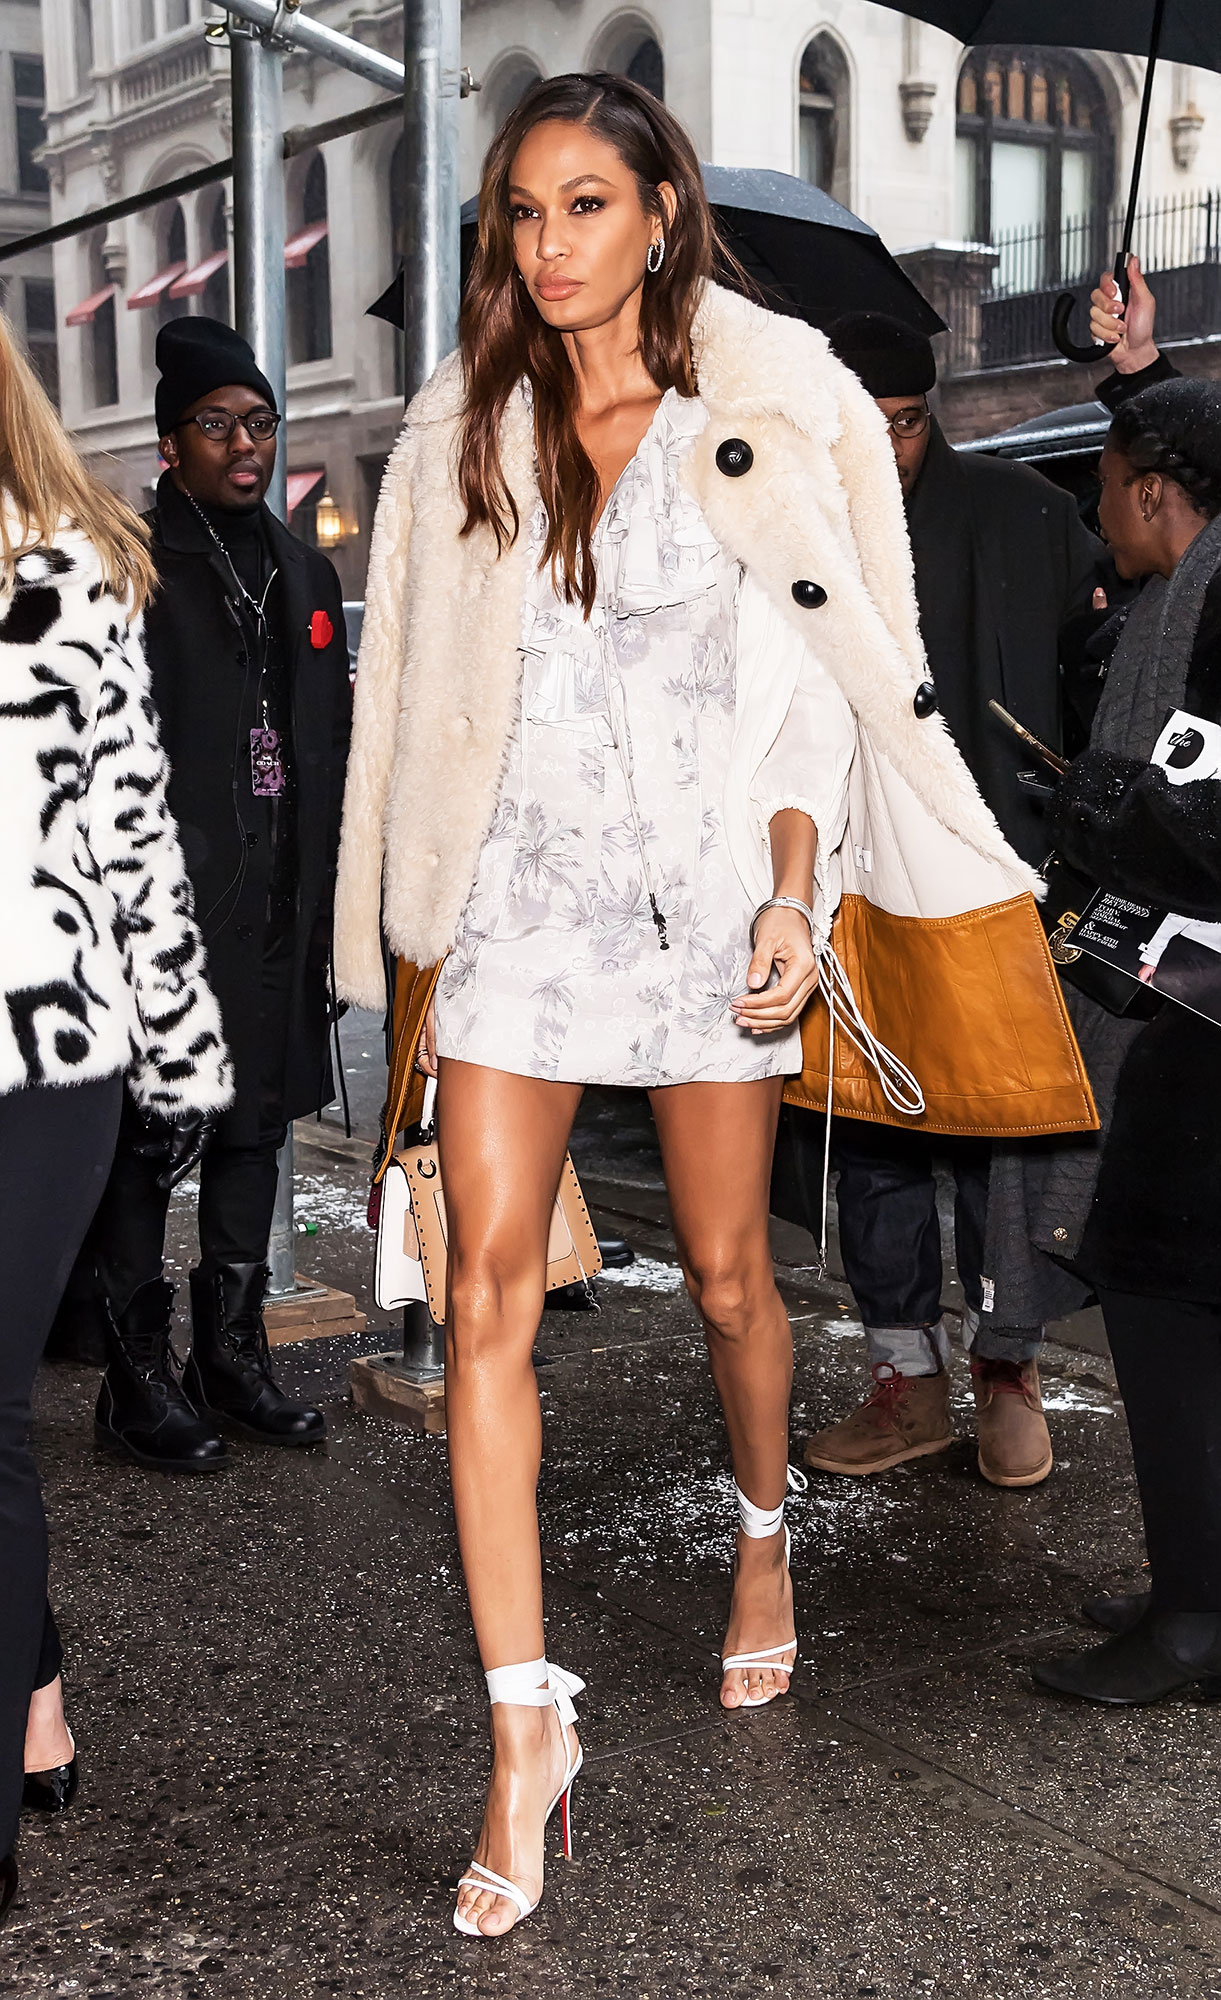 Joan Smalls - The model was seen outside the Coach 1941 fashion show in a weather-aspirational look complete with sandal heels and a white minidress.